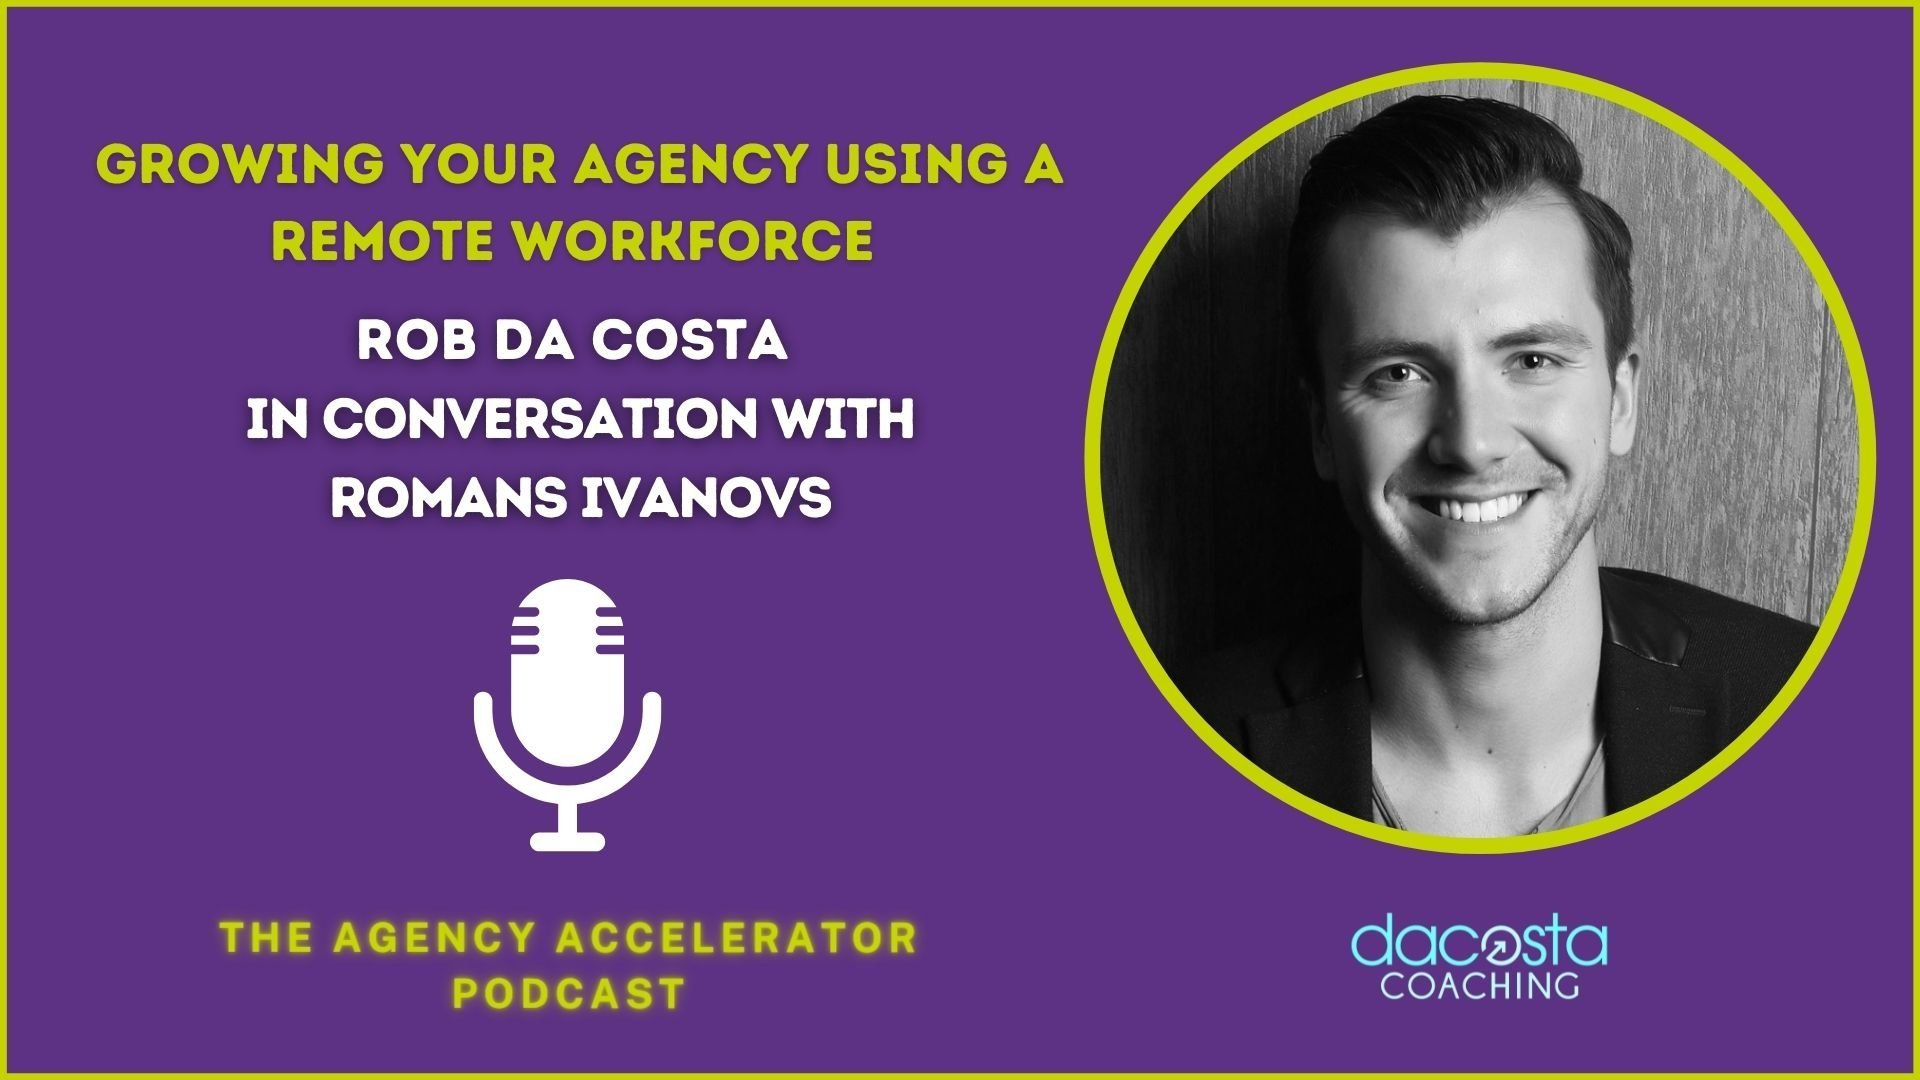 The Agency Accelerator Podcast